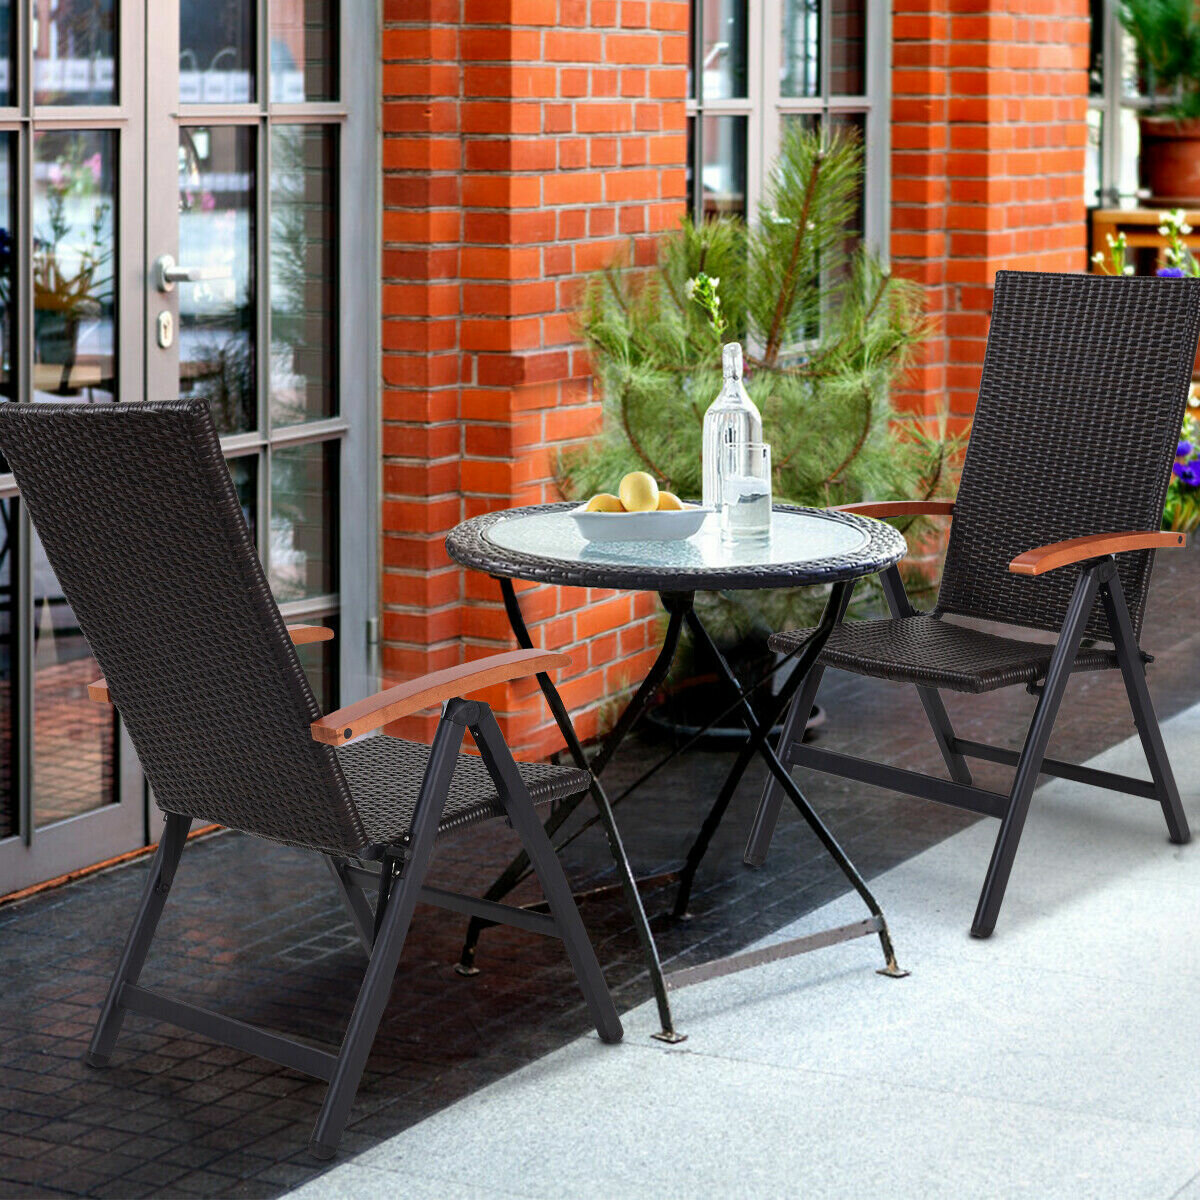 Peachy Letchworth Garden Recliner Patio Chair Ocoug Best Dining Table And Chair Ideas Images Ocougorg